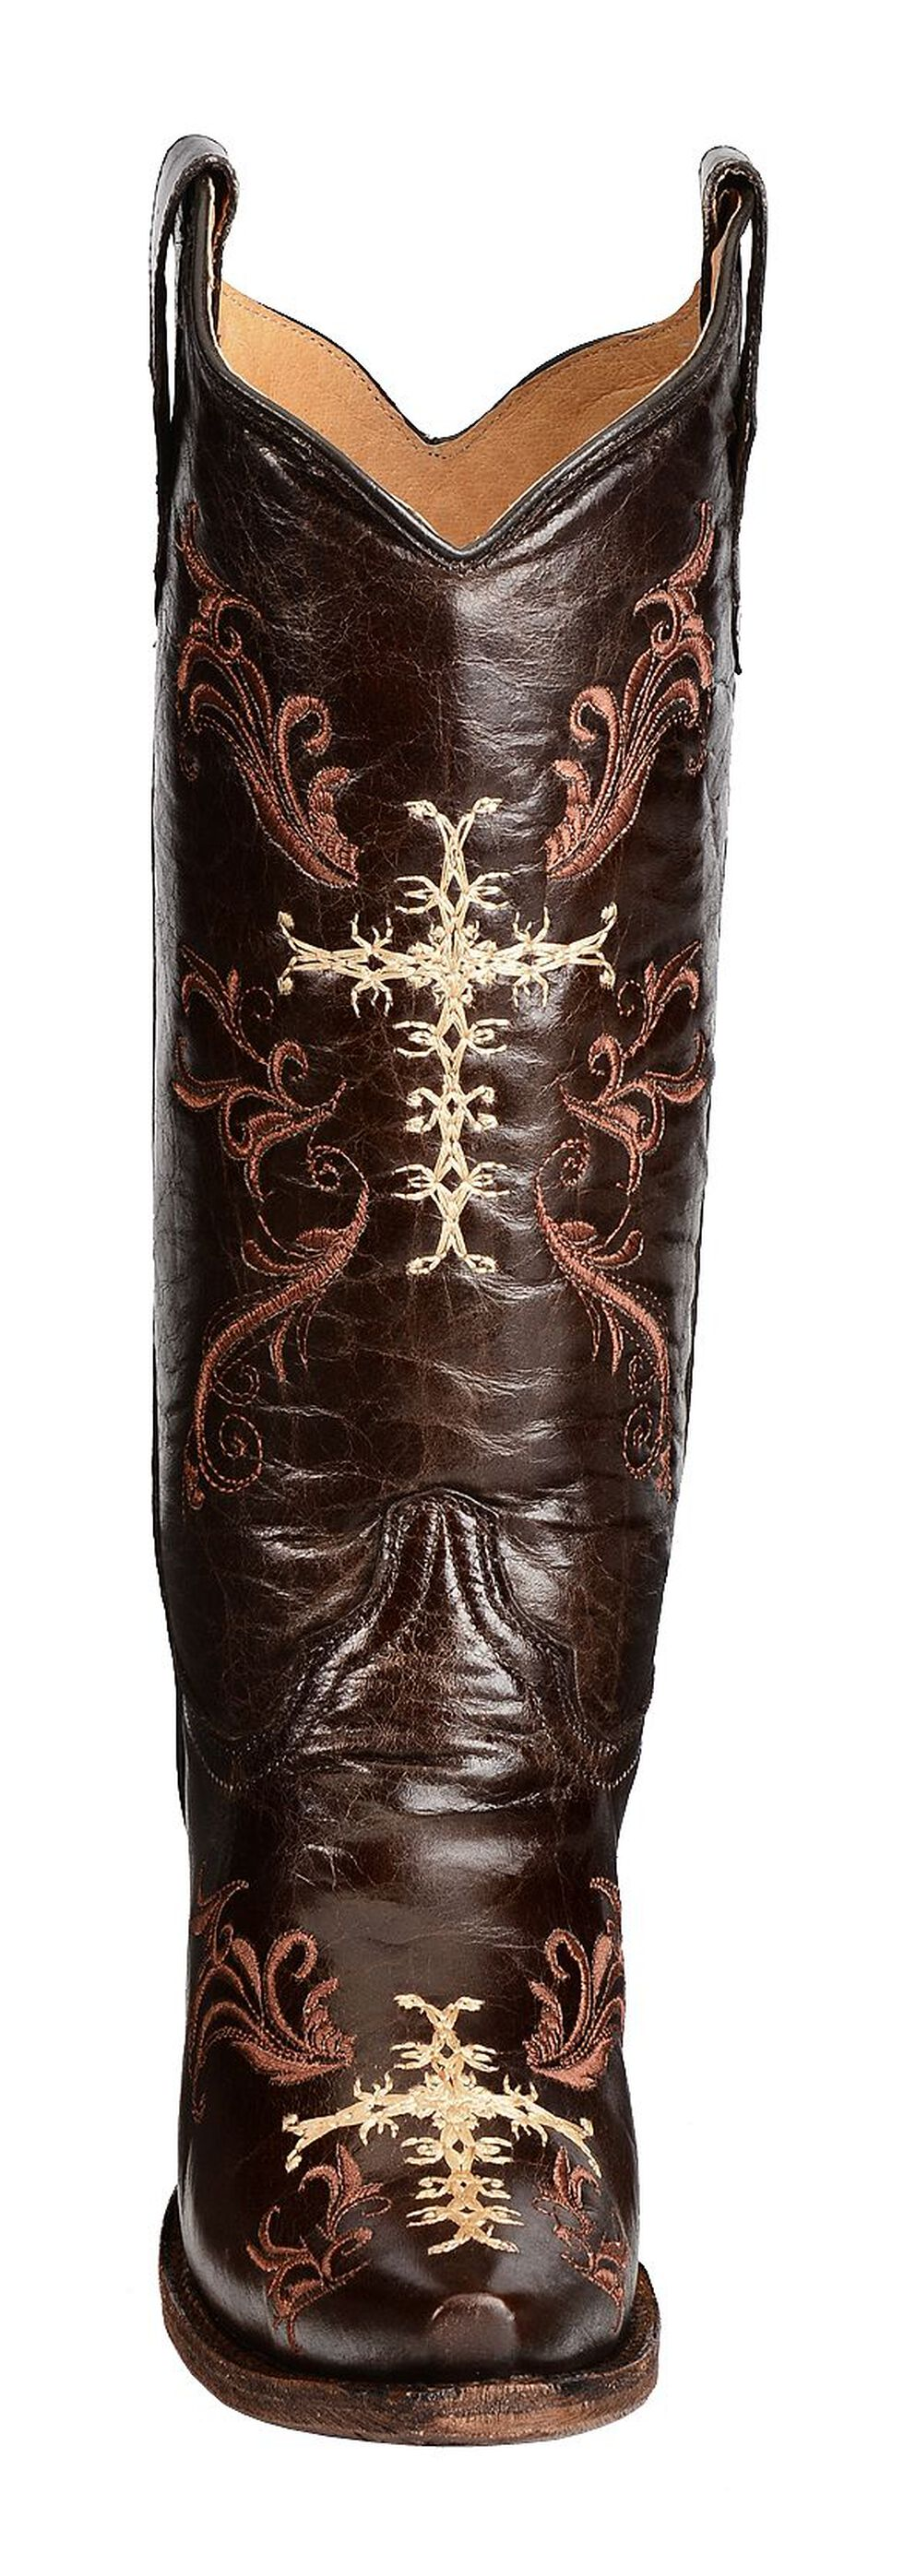 Circle G Chocolate Cross Embroidered Cowgirl Boots - Snip Toe, Chocolate, hi-res